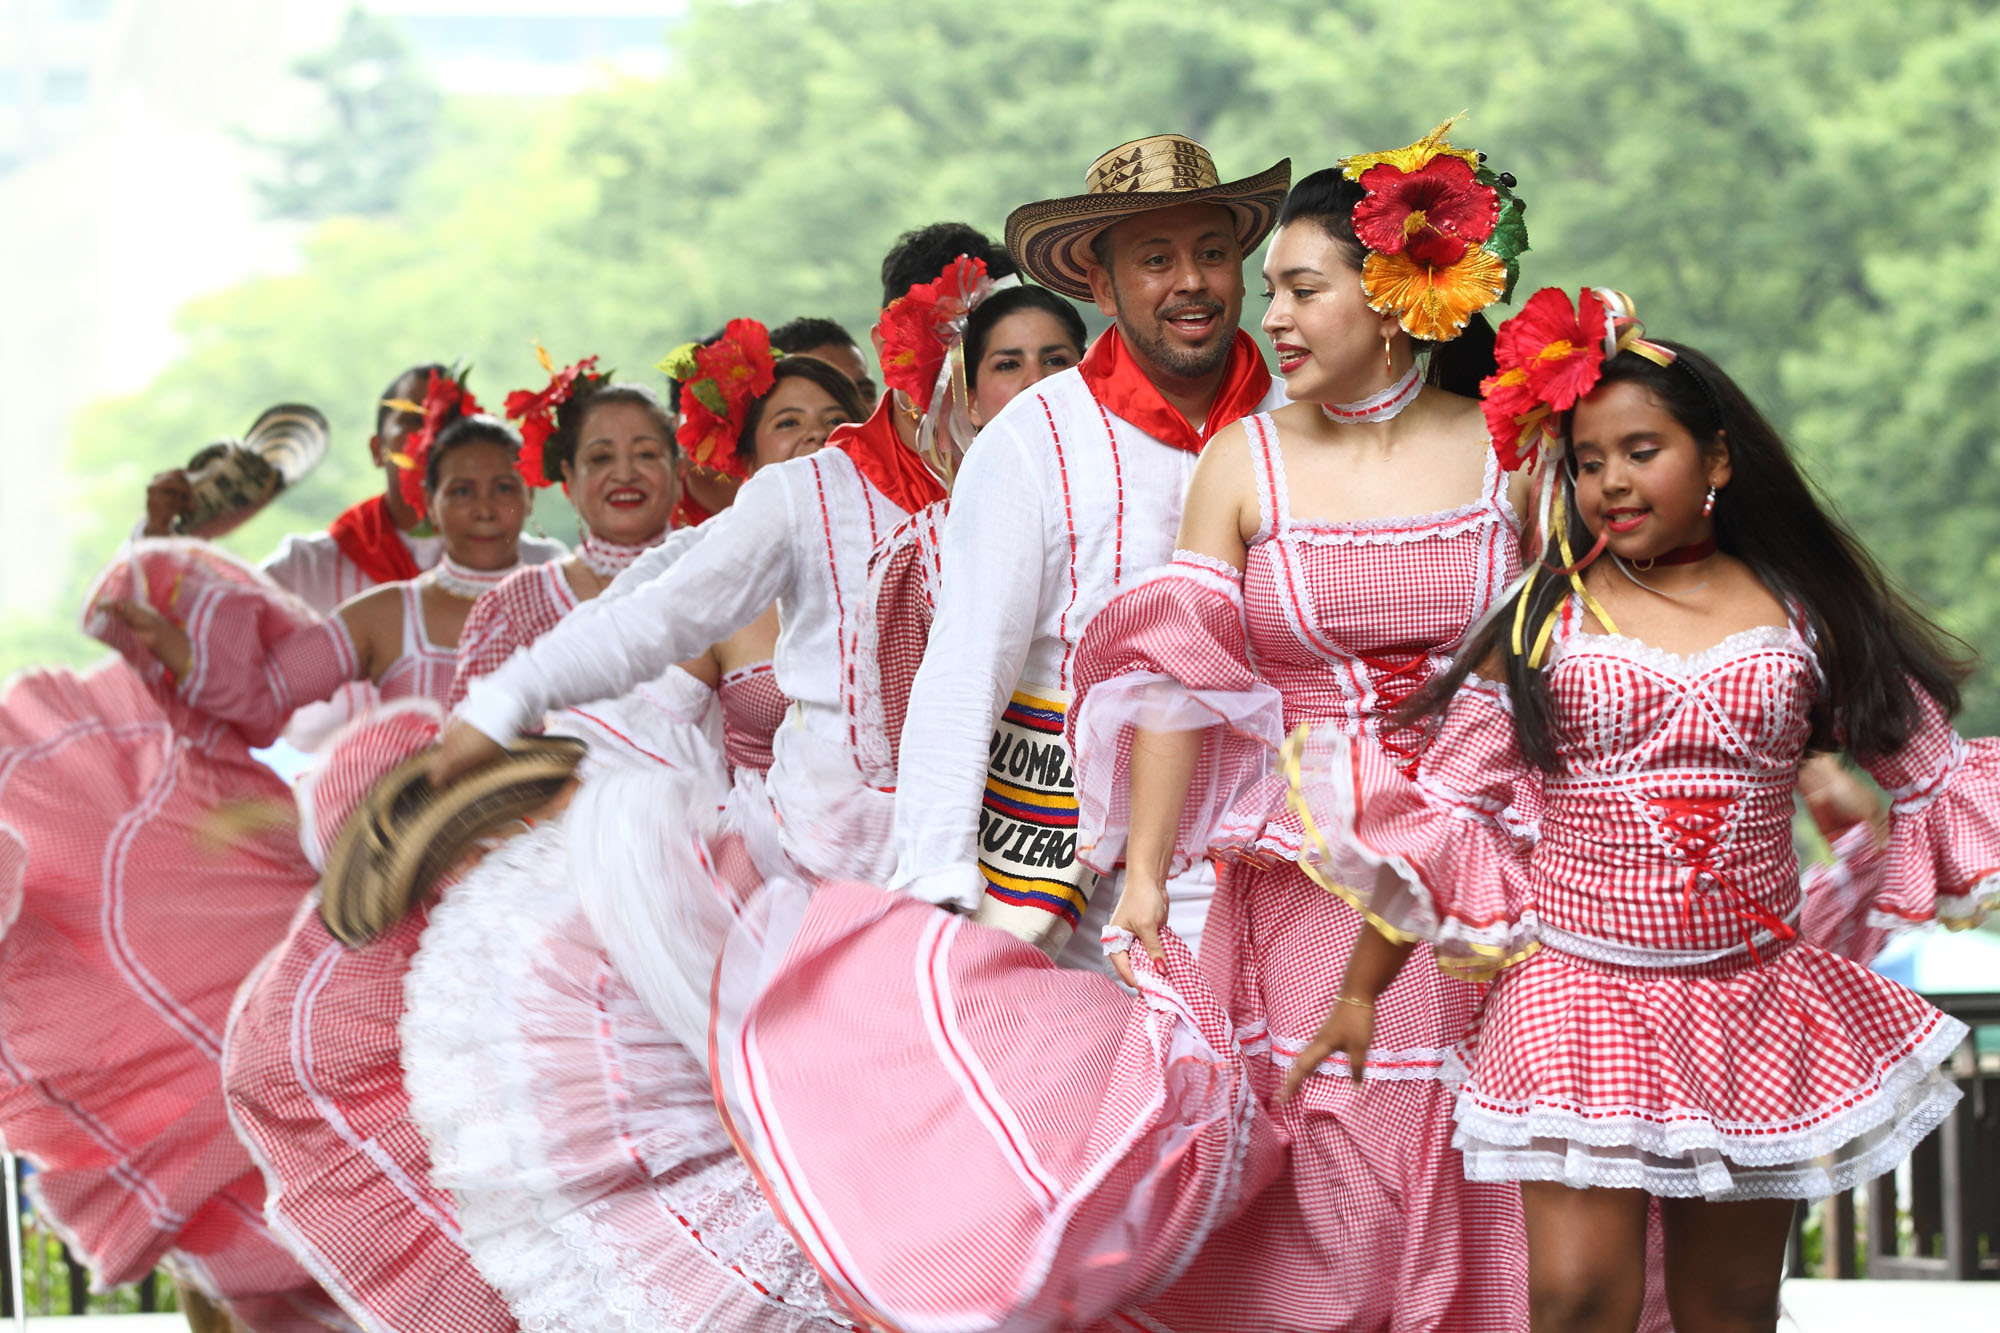 Colombian dance group Agrupacion Shizuoka perform during celebrations marking the 207th anniversary of Independence Day at an event titled Fiesta de Colombia in Hibiya Park on July 16. |  COURTESY OF THE COLOMBIAN EMBASSY